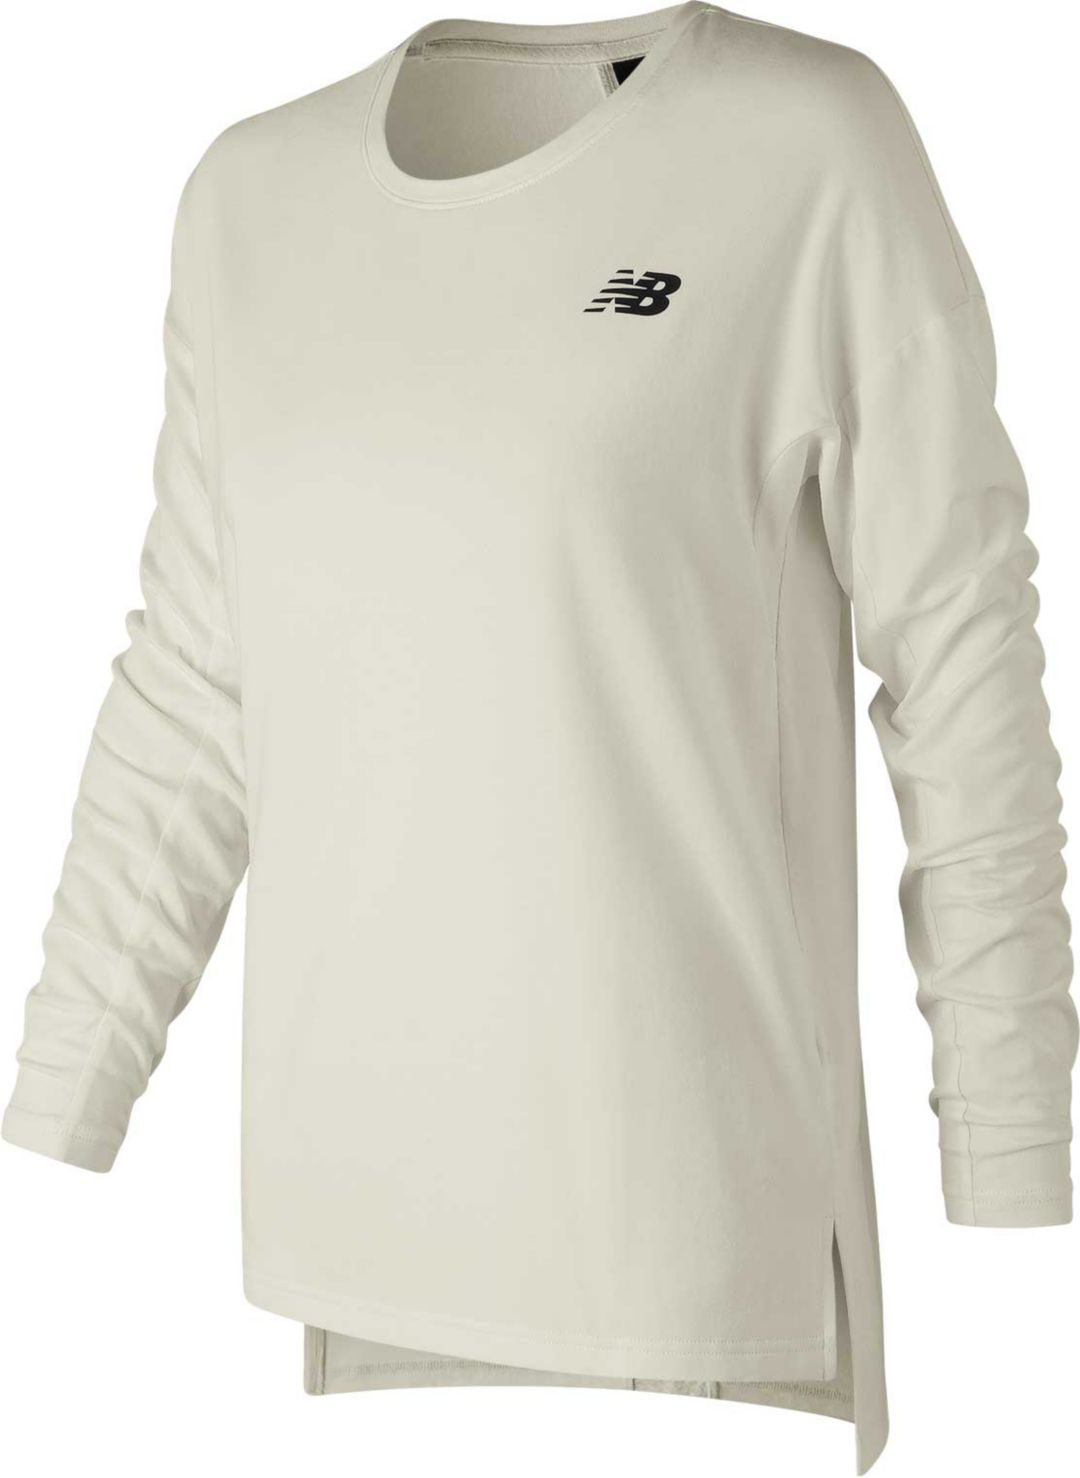 672160c4aa149 New Balance Women's 247 Sport Long Sleeve Shirt